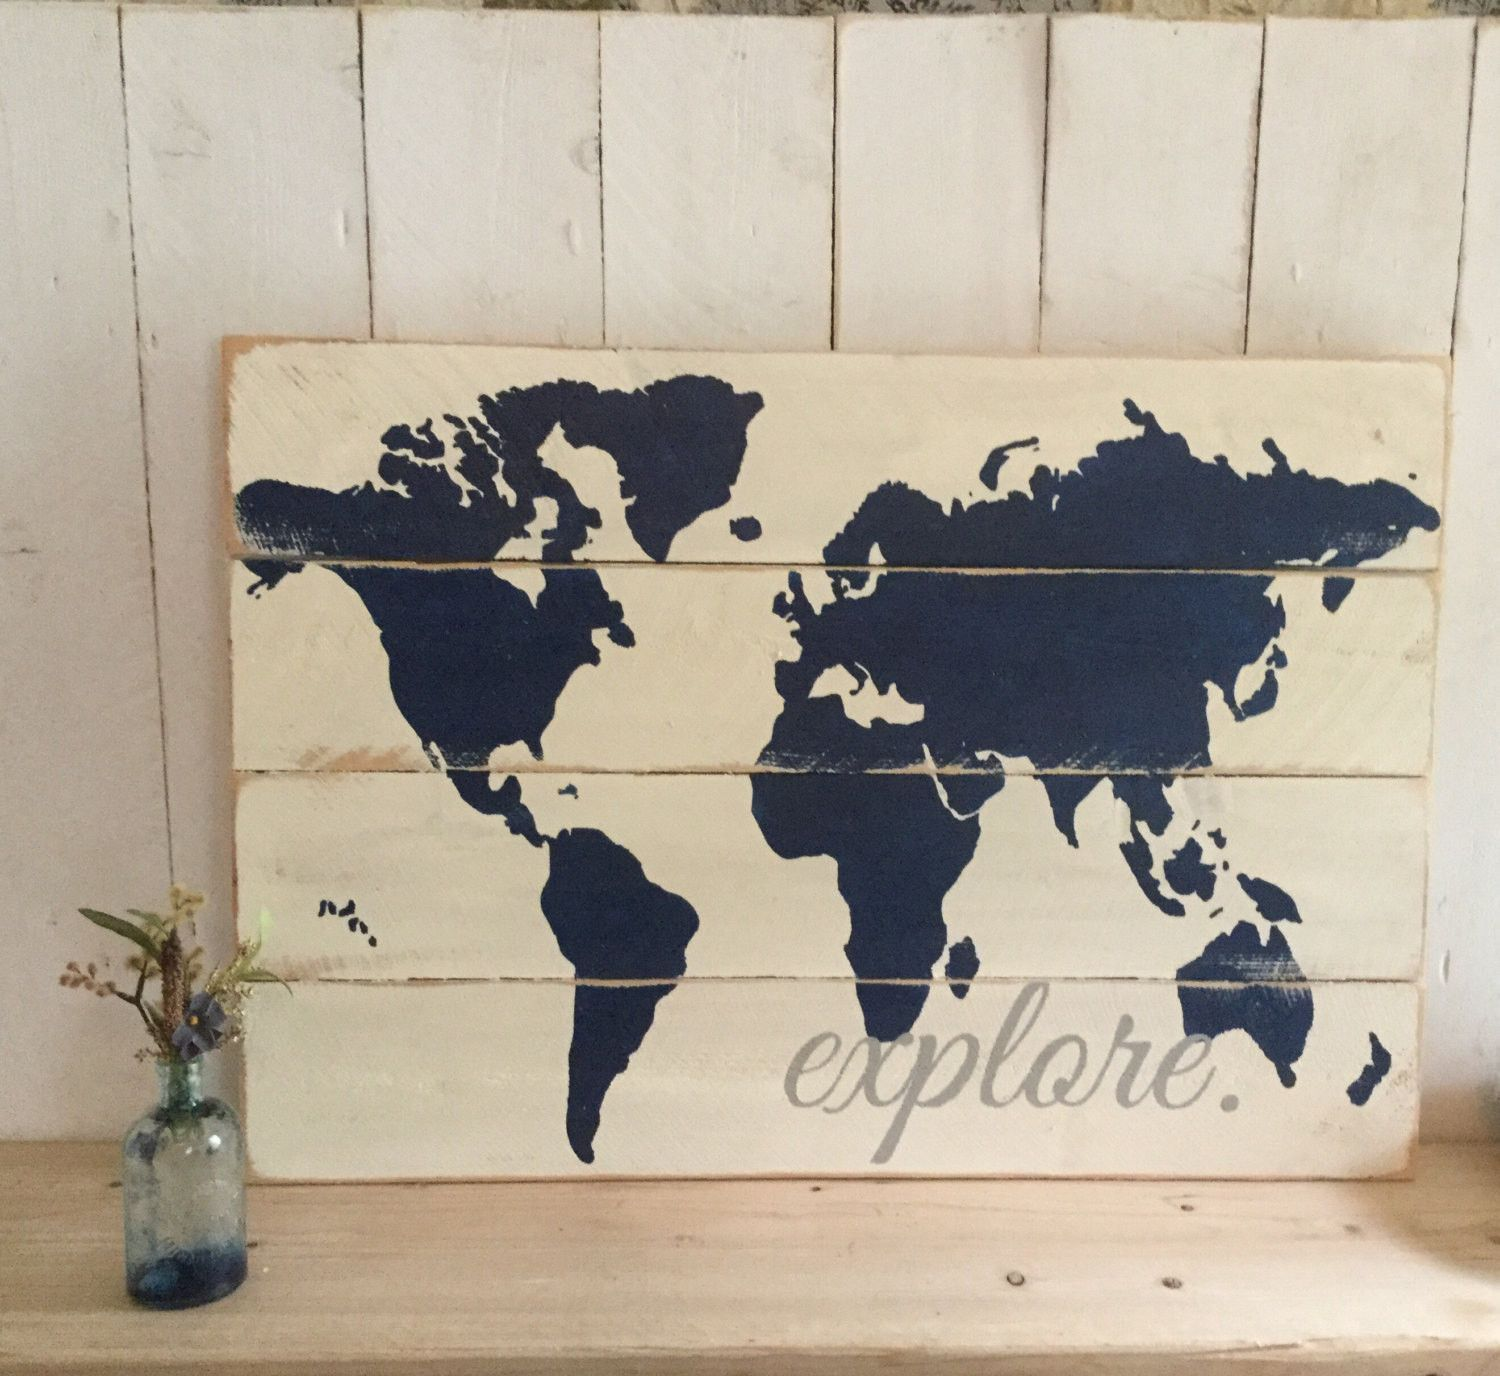 Explore world map wooden nursery map travel themed decor boys explore world map wooden nursery map travel themed decor boys room decor travel map nursery wall art rustic world map gumiabroncs Image collections